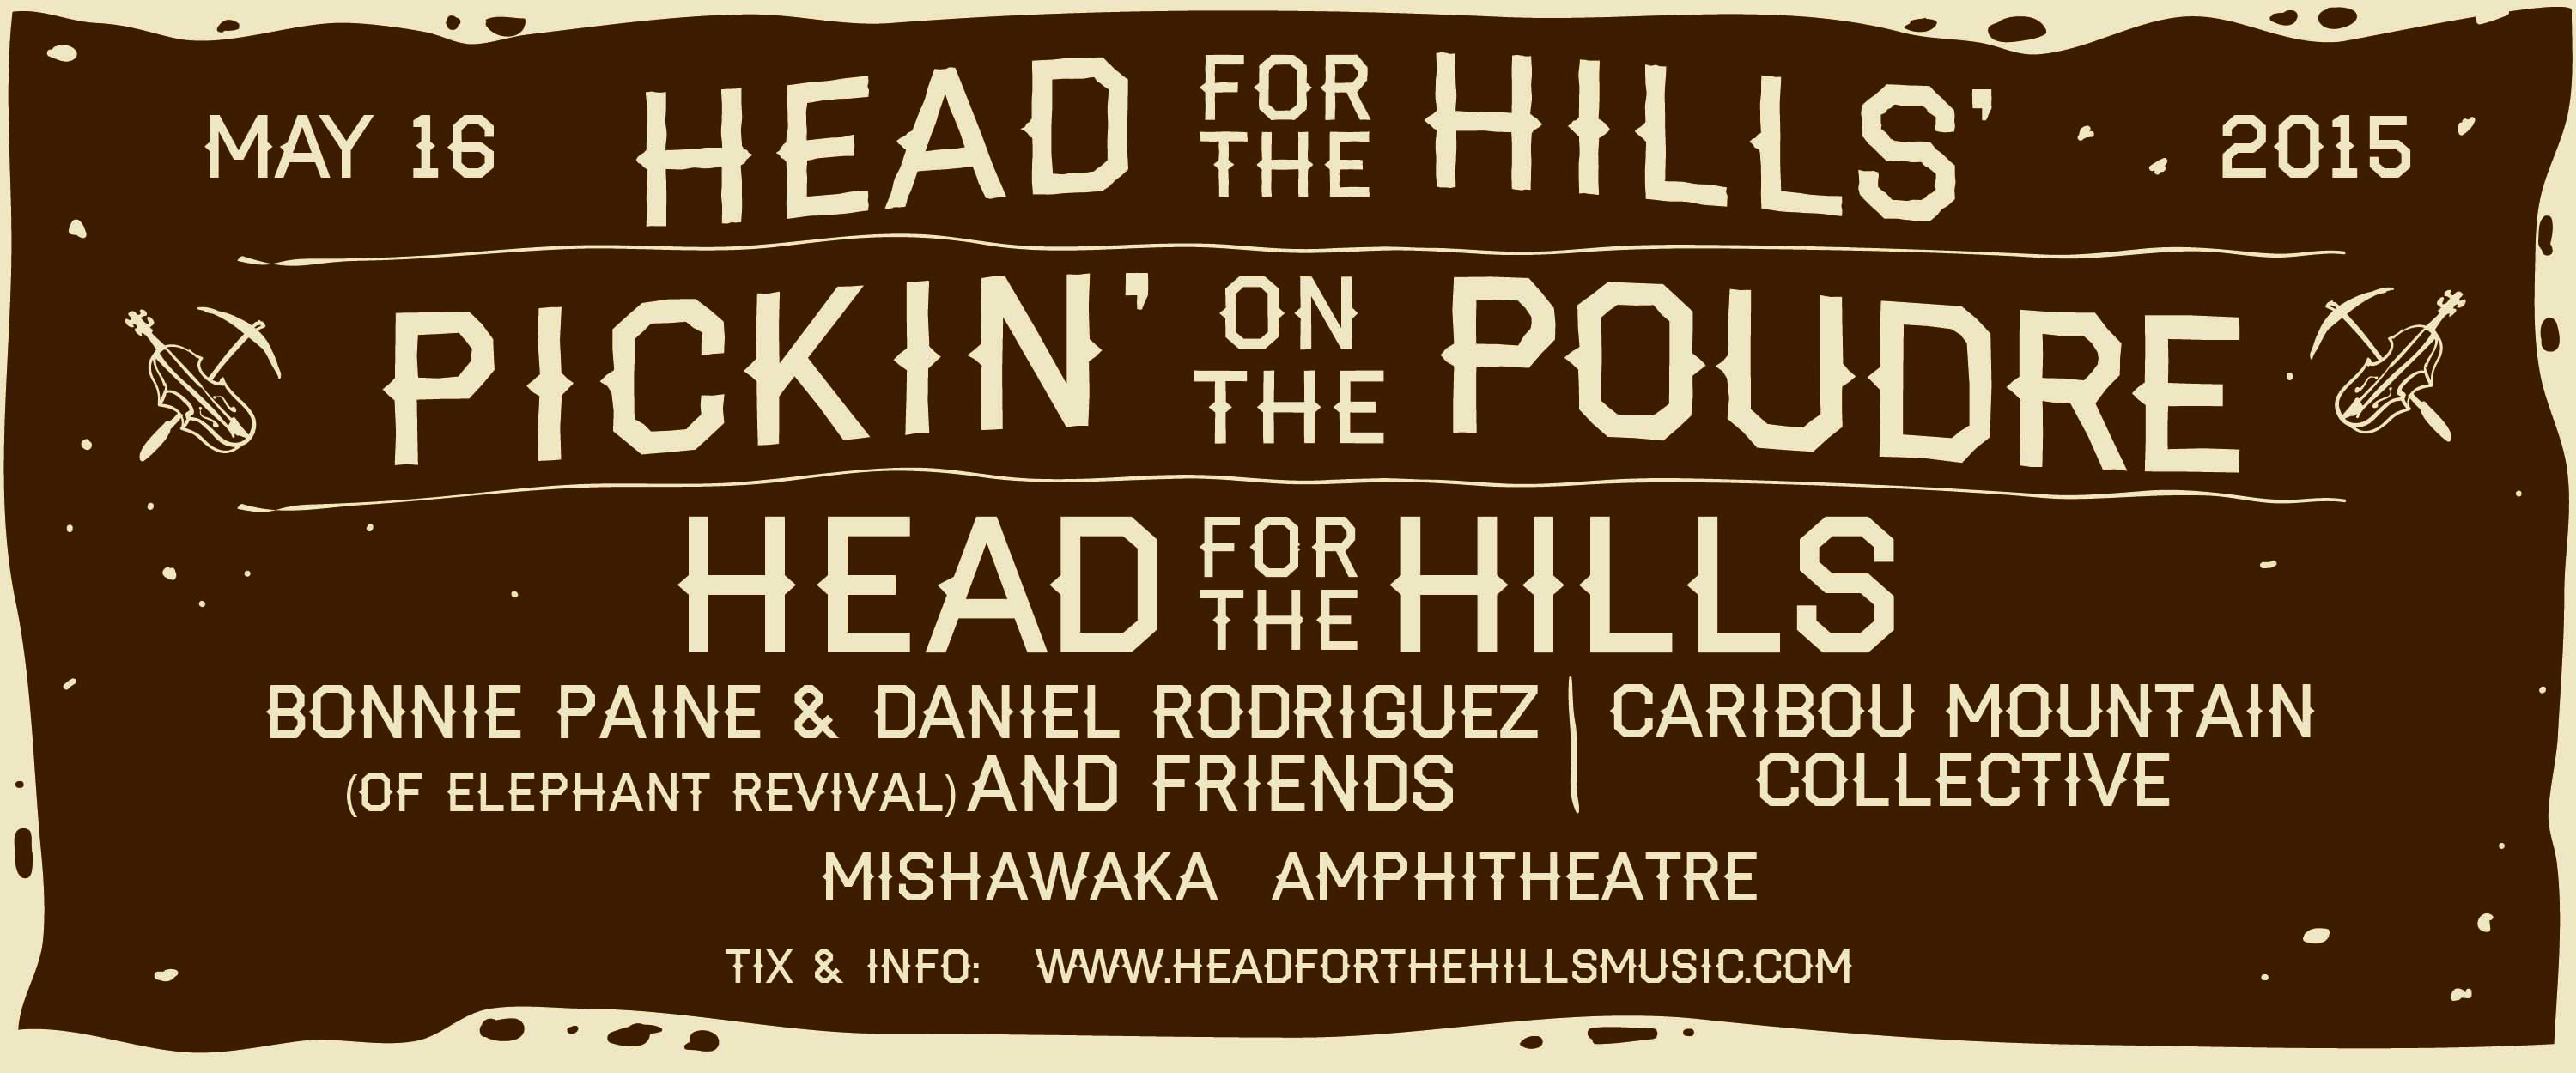 Head for the Hills' Pickin' on the Poudre - 5/16/15